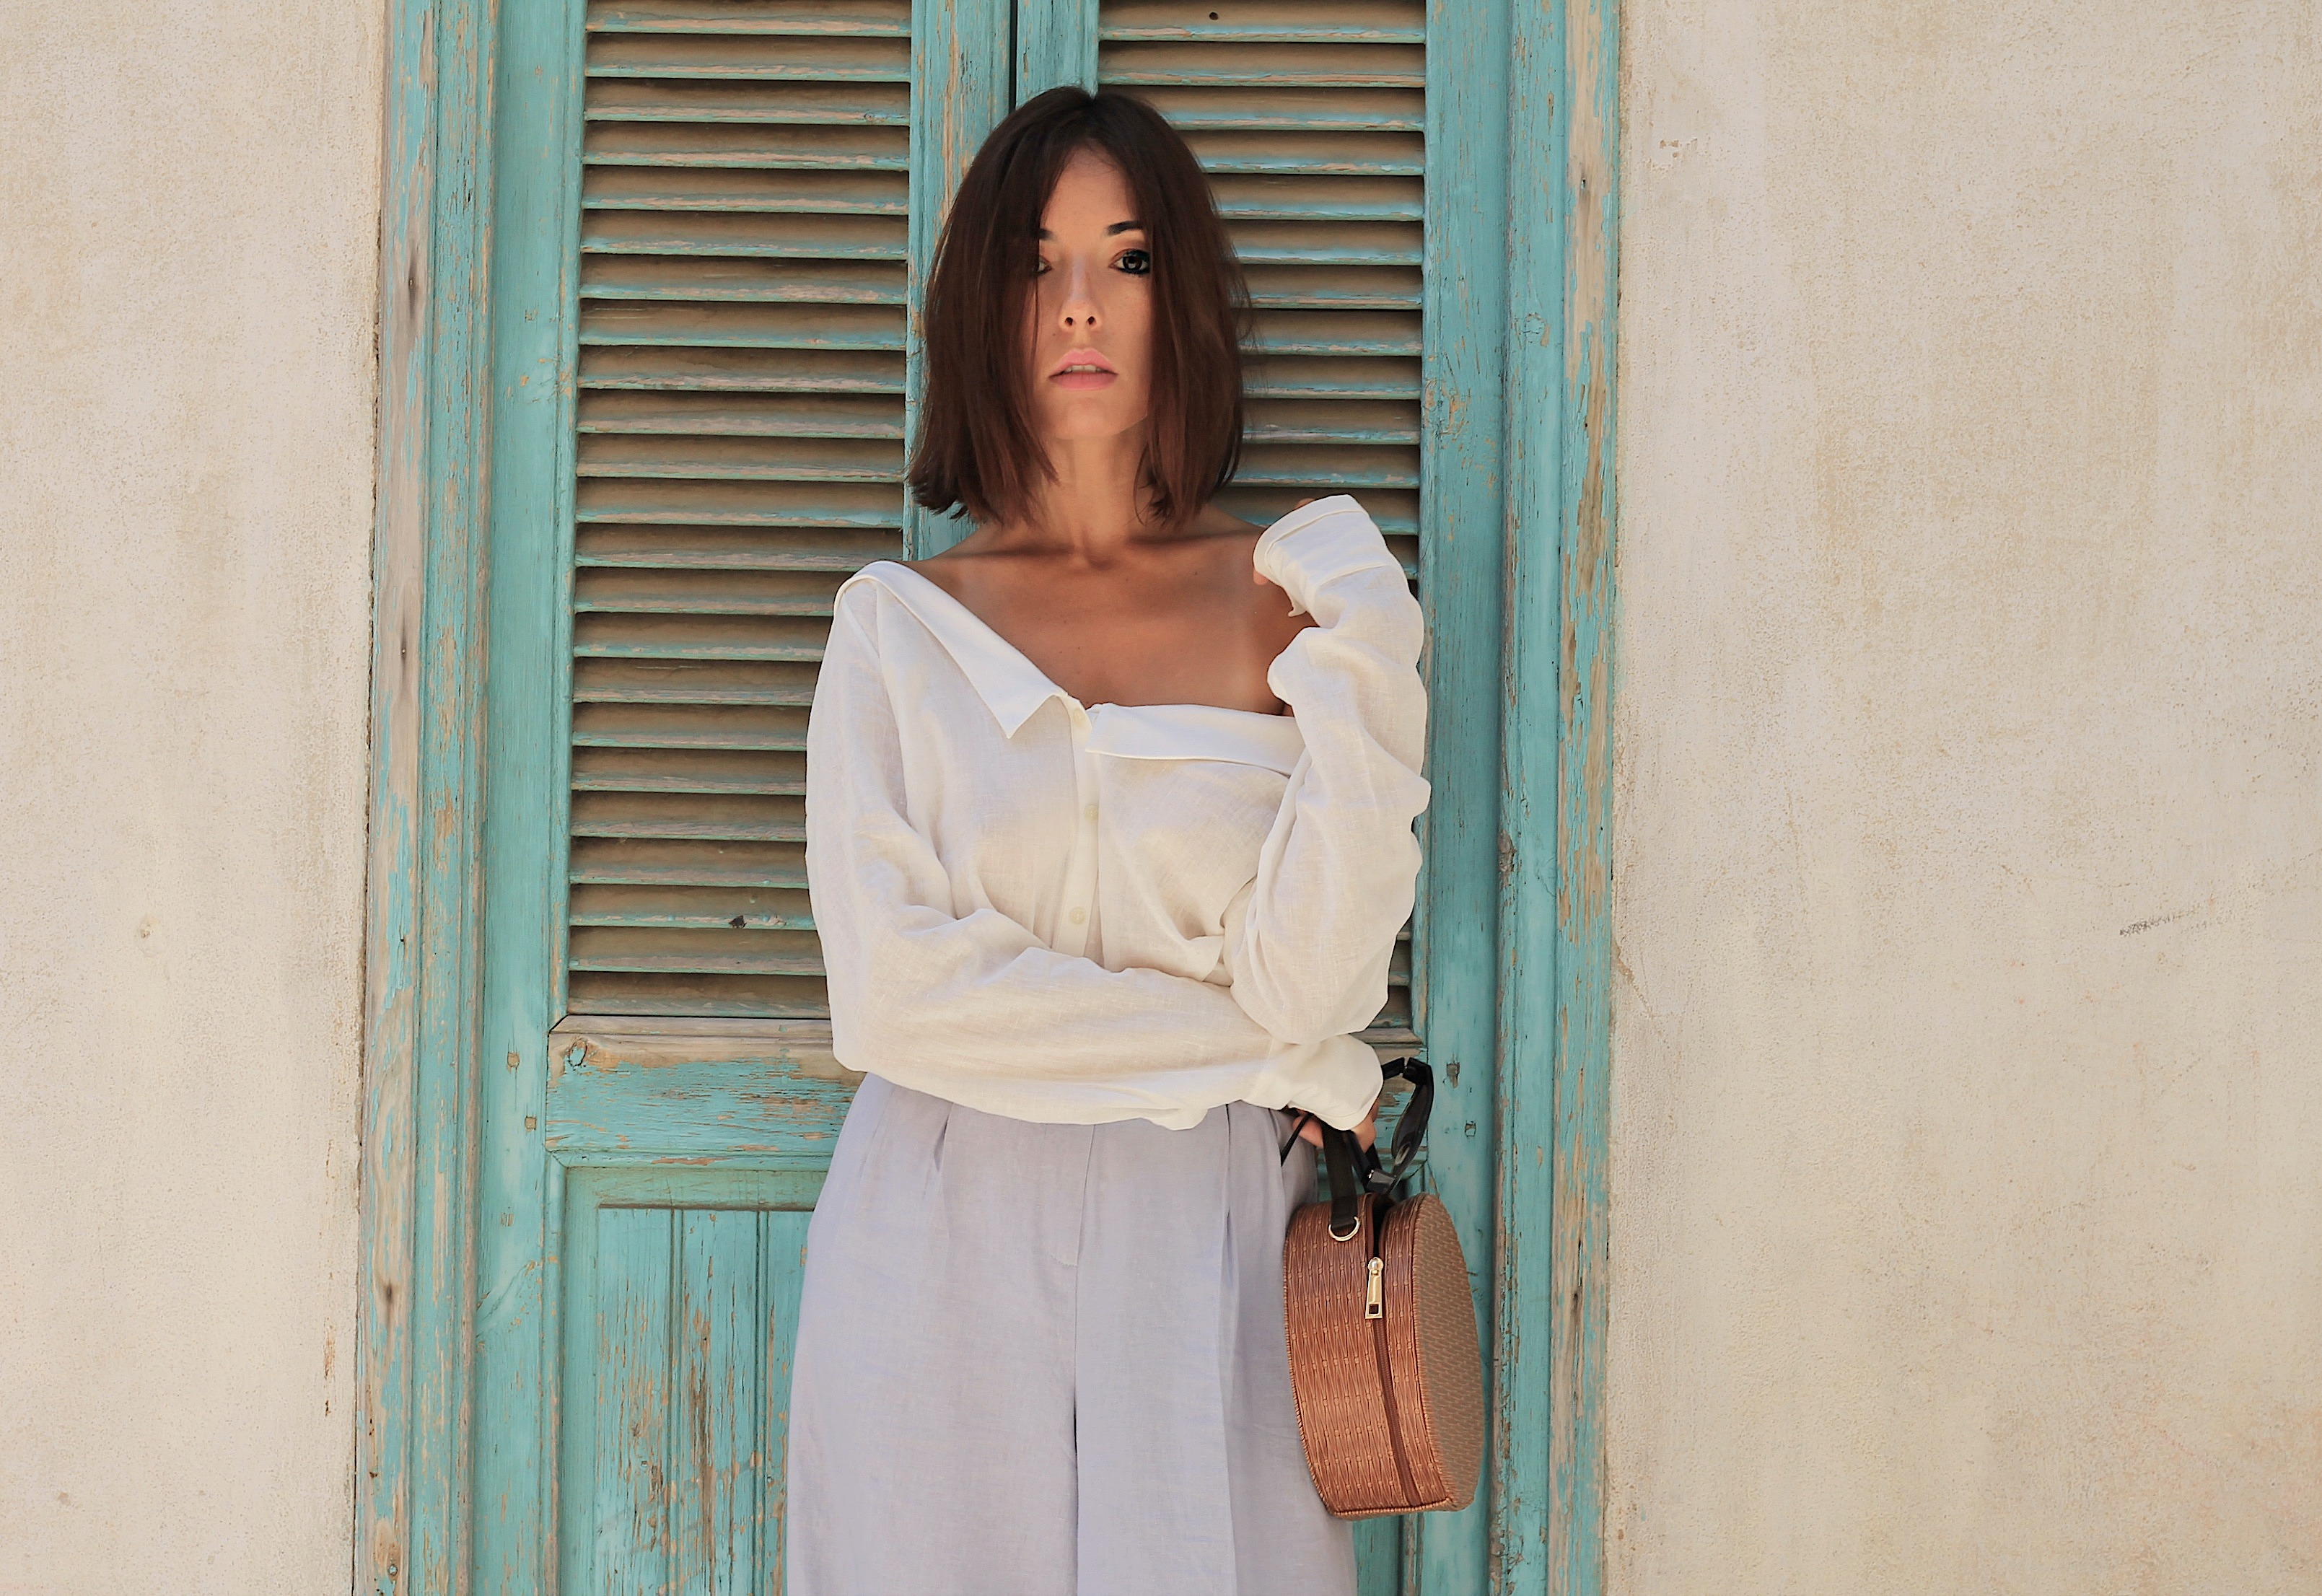 theladycracy.it, elisa bellino, fashion blog 2017, fashion blogger italia 2017, borsa paglia 2017, circle bag 2017, outfit moda 2017, come vestirsi estate 2017, come mi vesto casual chic 2017, minimal style blogger, fashion editorial blogger 2017, colette paris chiude perché, colette parigi storia, fashion blogger milano 2017, blogger moda più seguite 2017, fashion blogger famose 2017